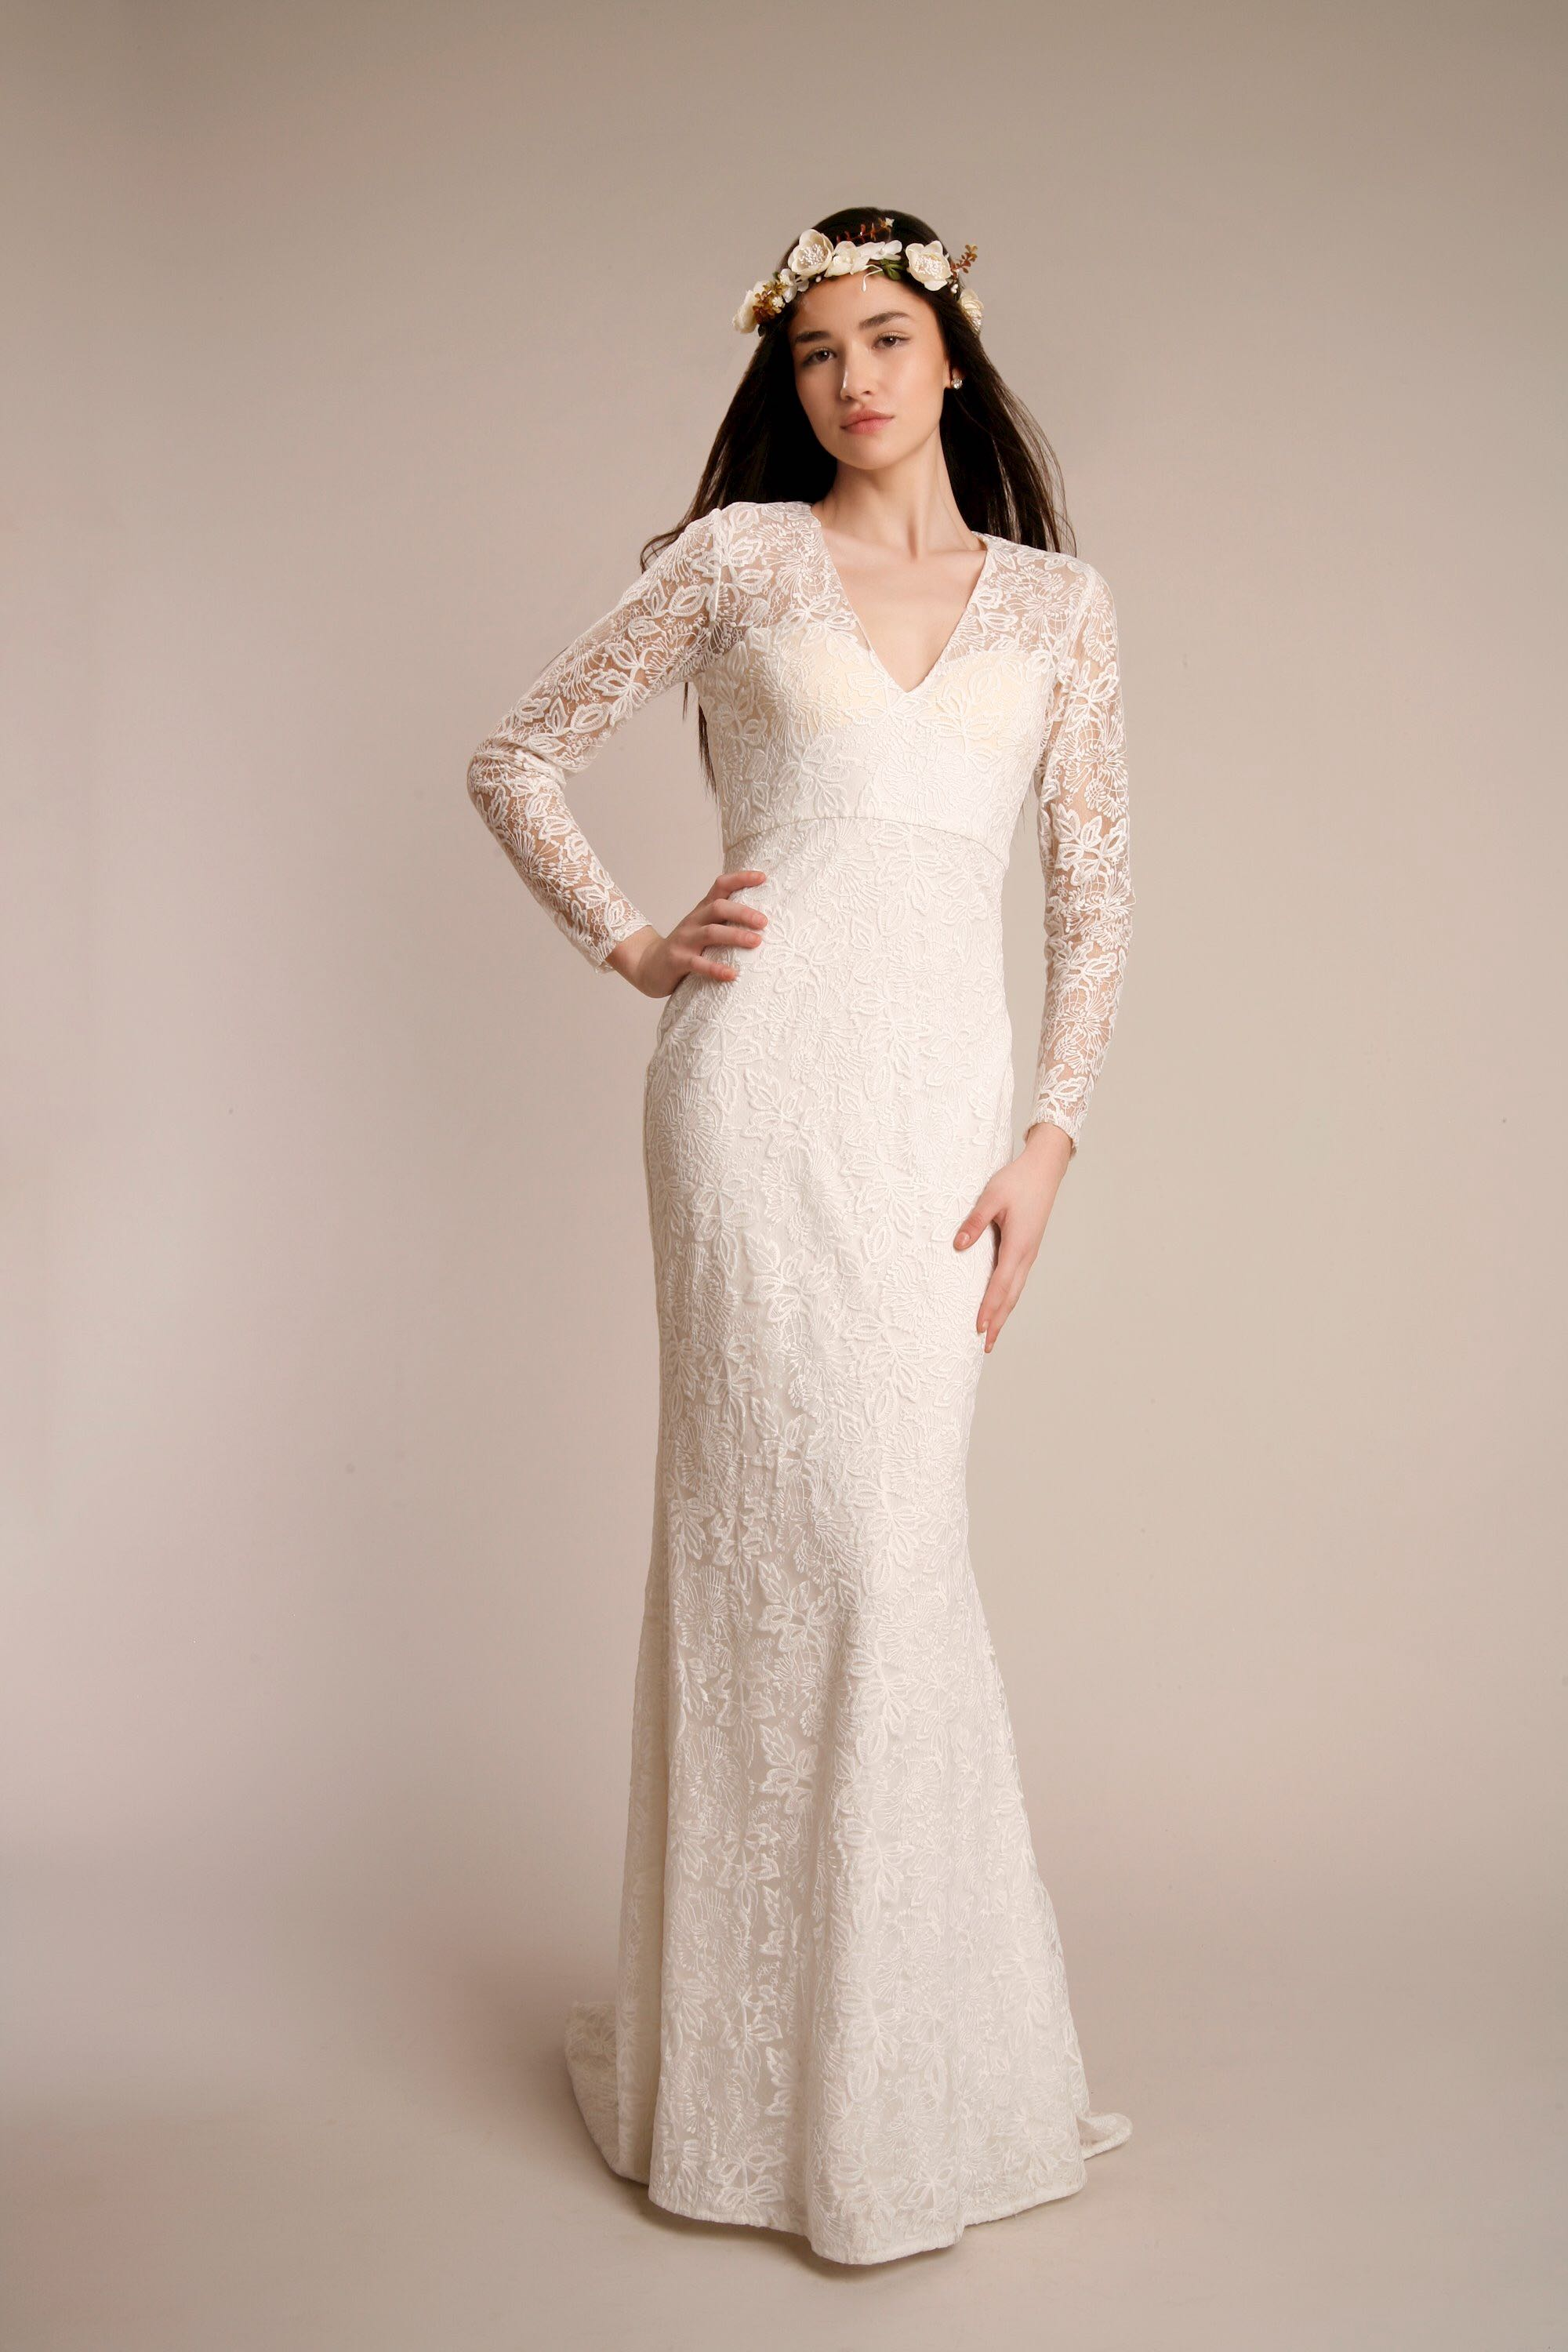 Lotus Threads 71097 Ivory // Retail Price $1400 | Our Price $980